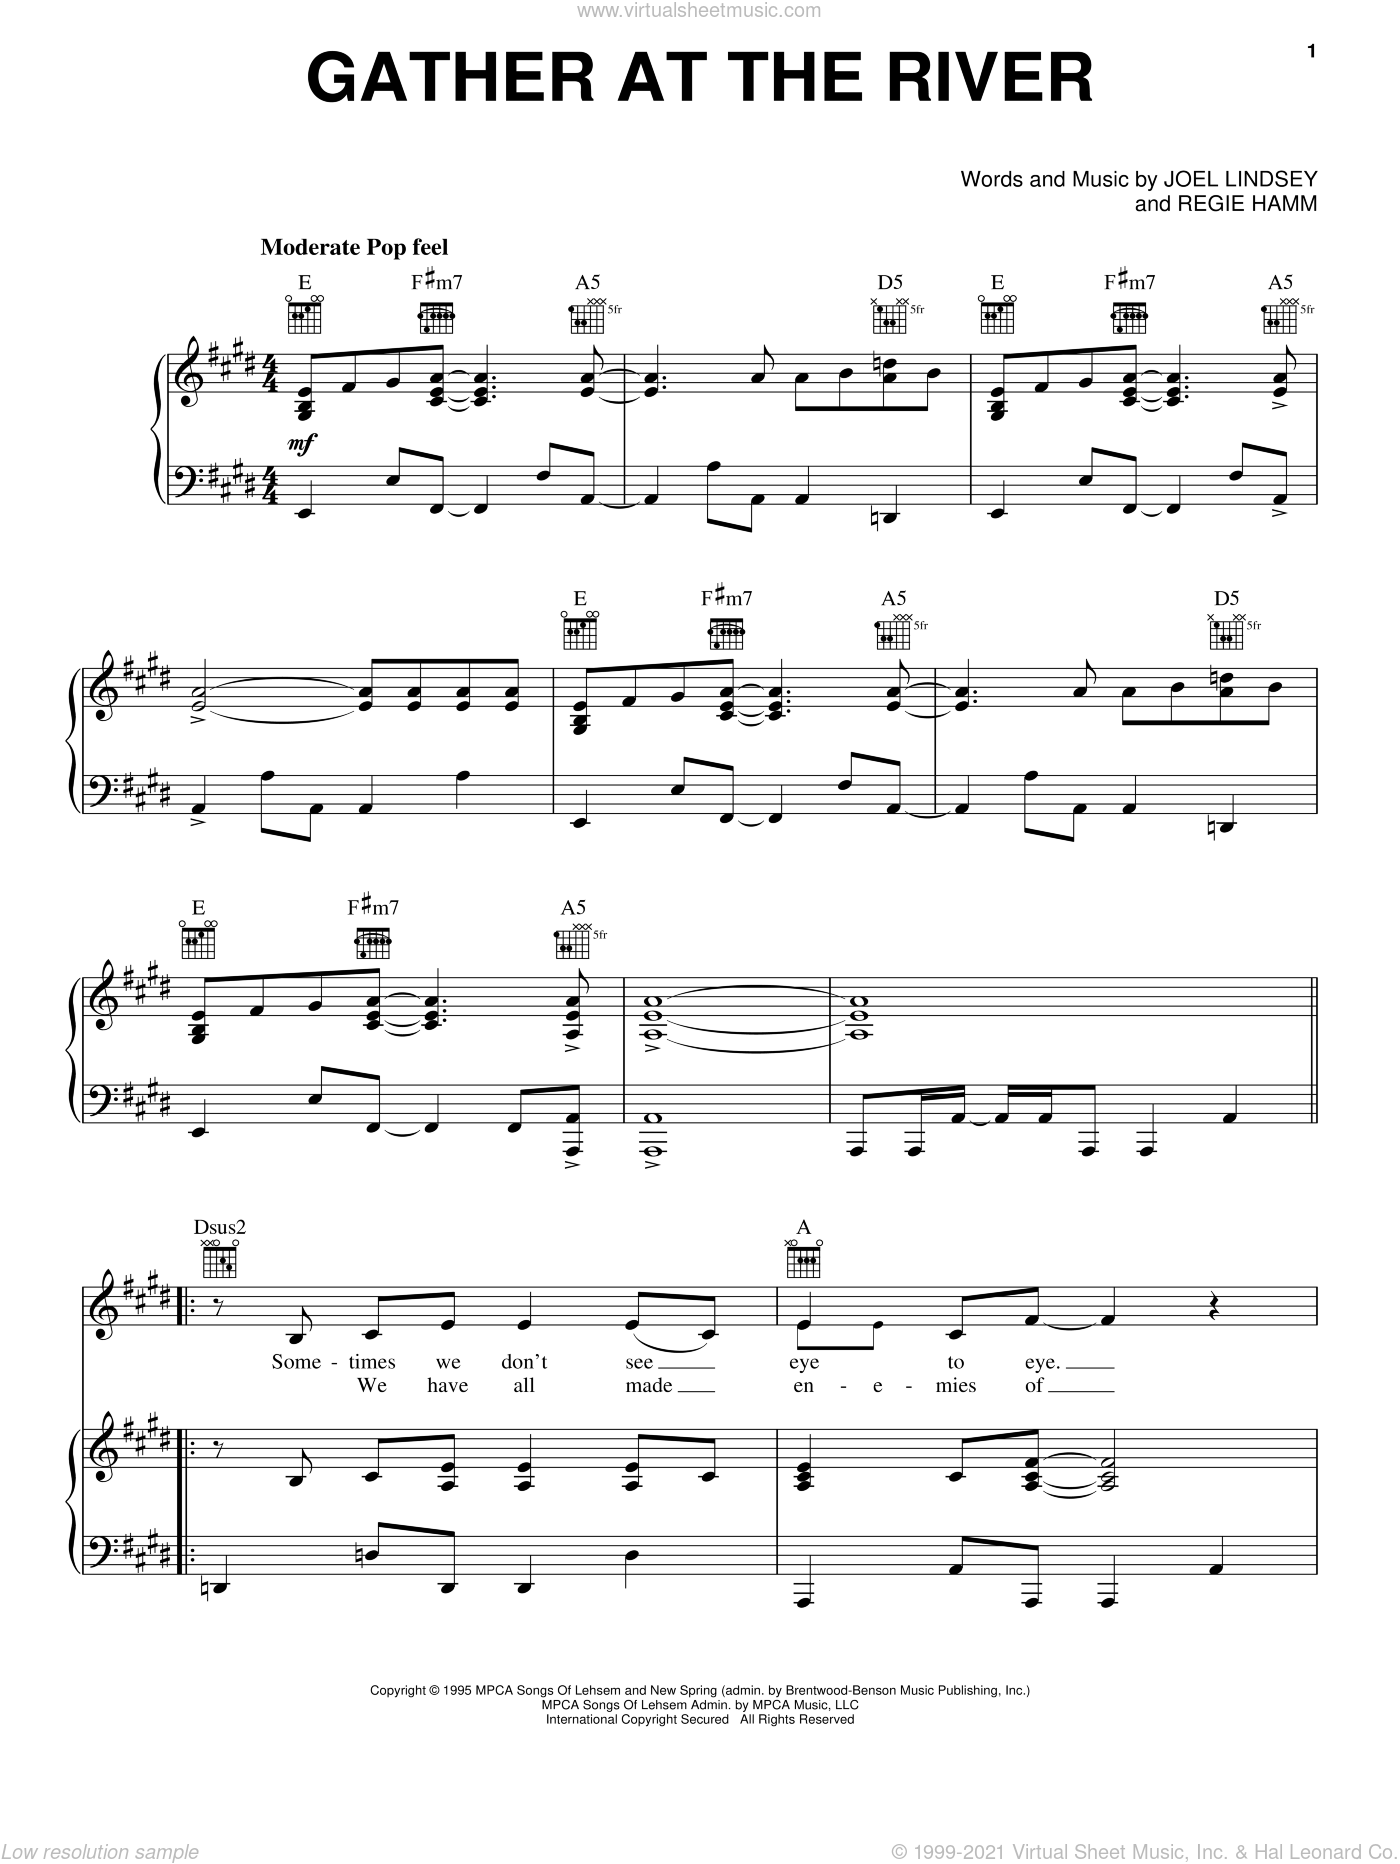 Gather At The River sheet music for voice, piano or guitar by Regie Hamm. Score Image Preview.